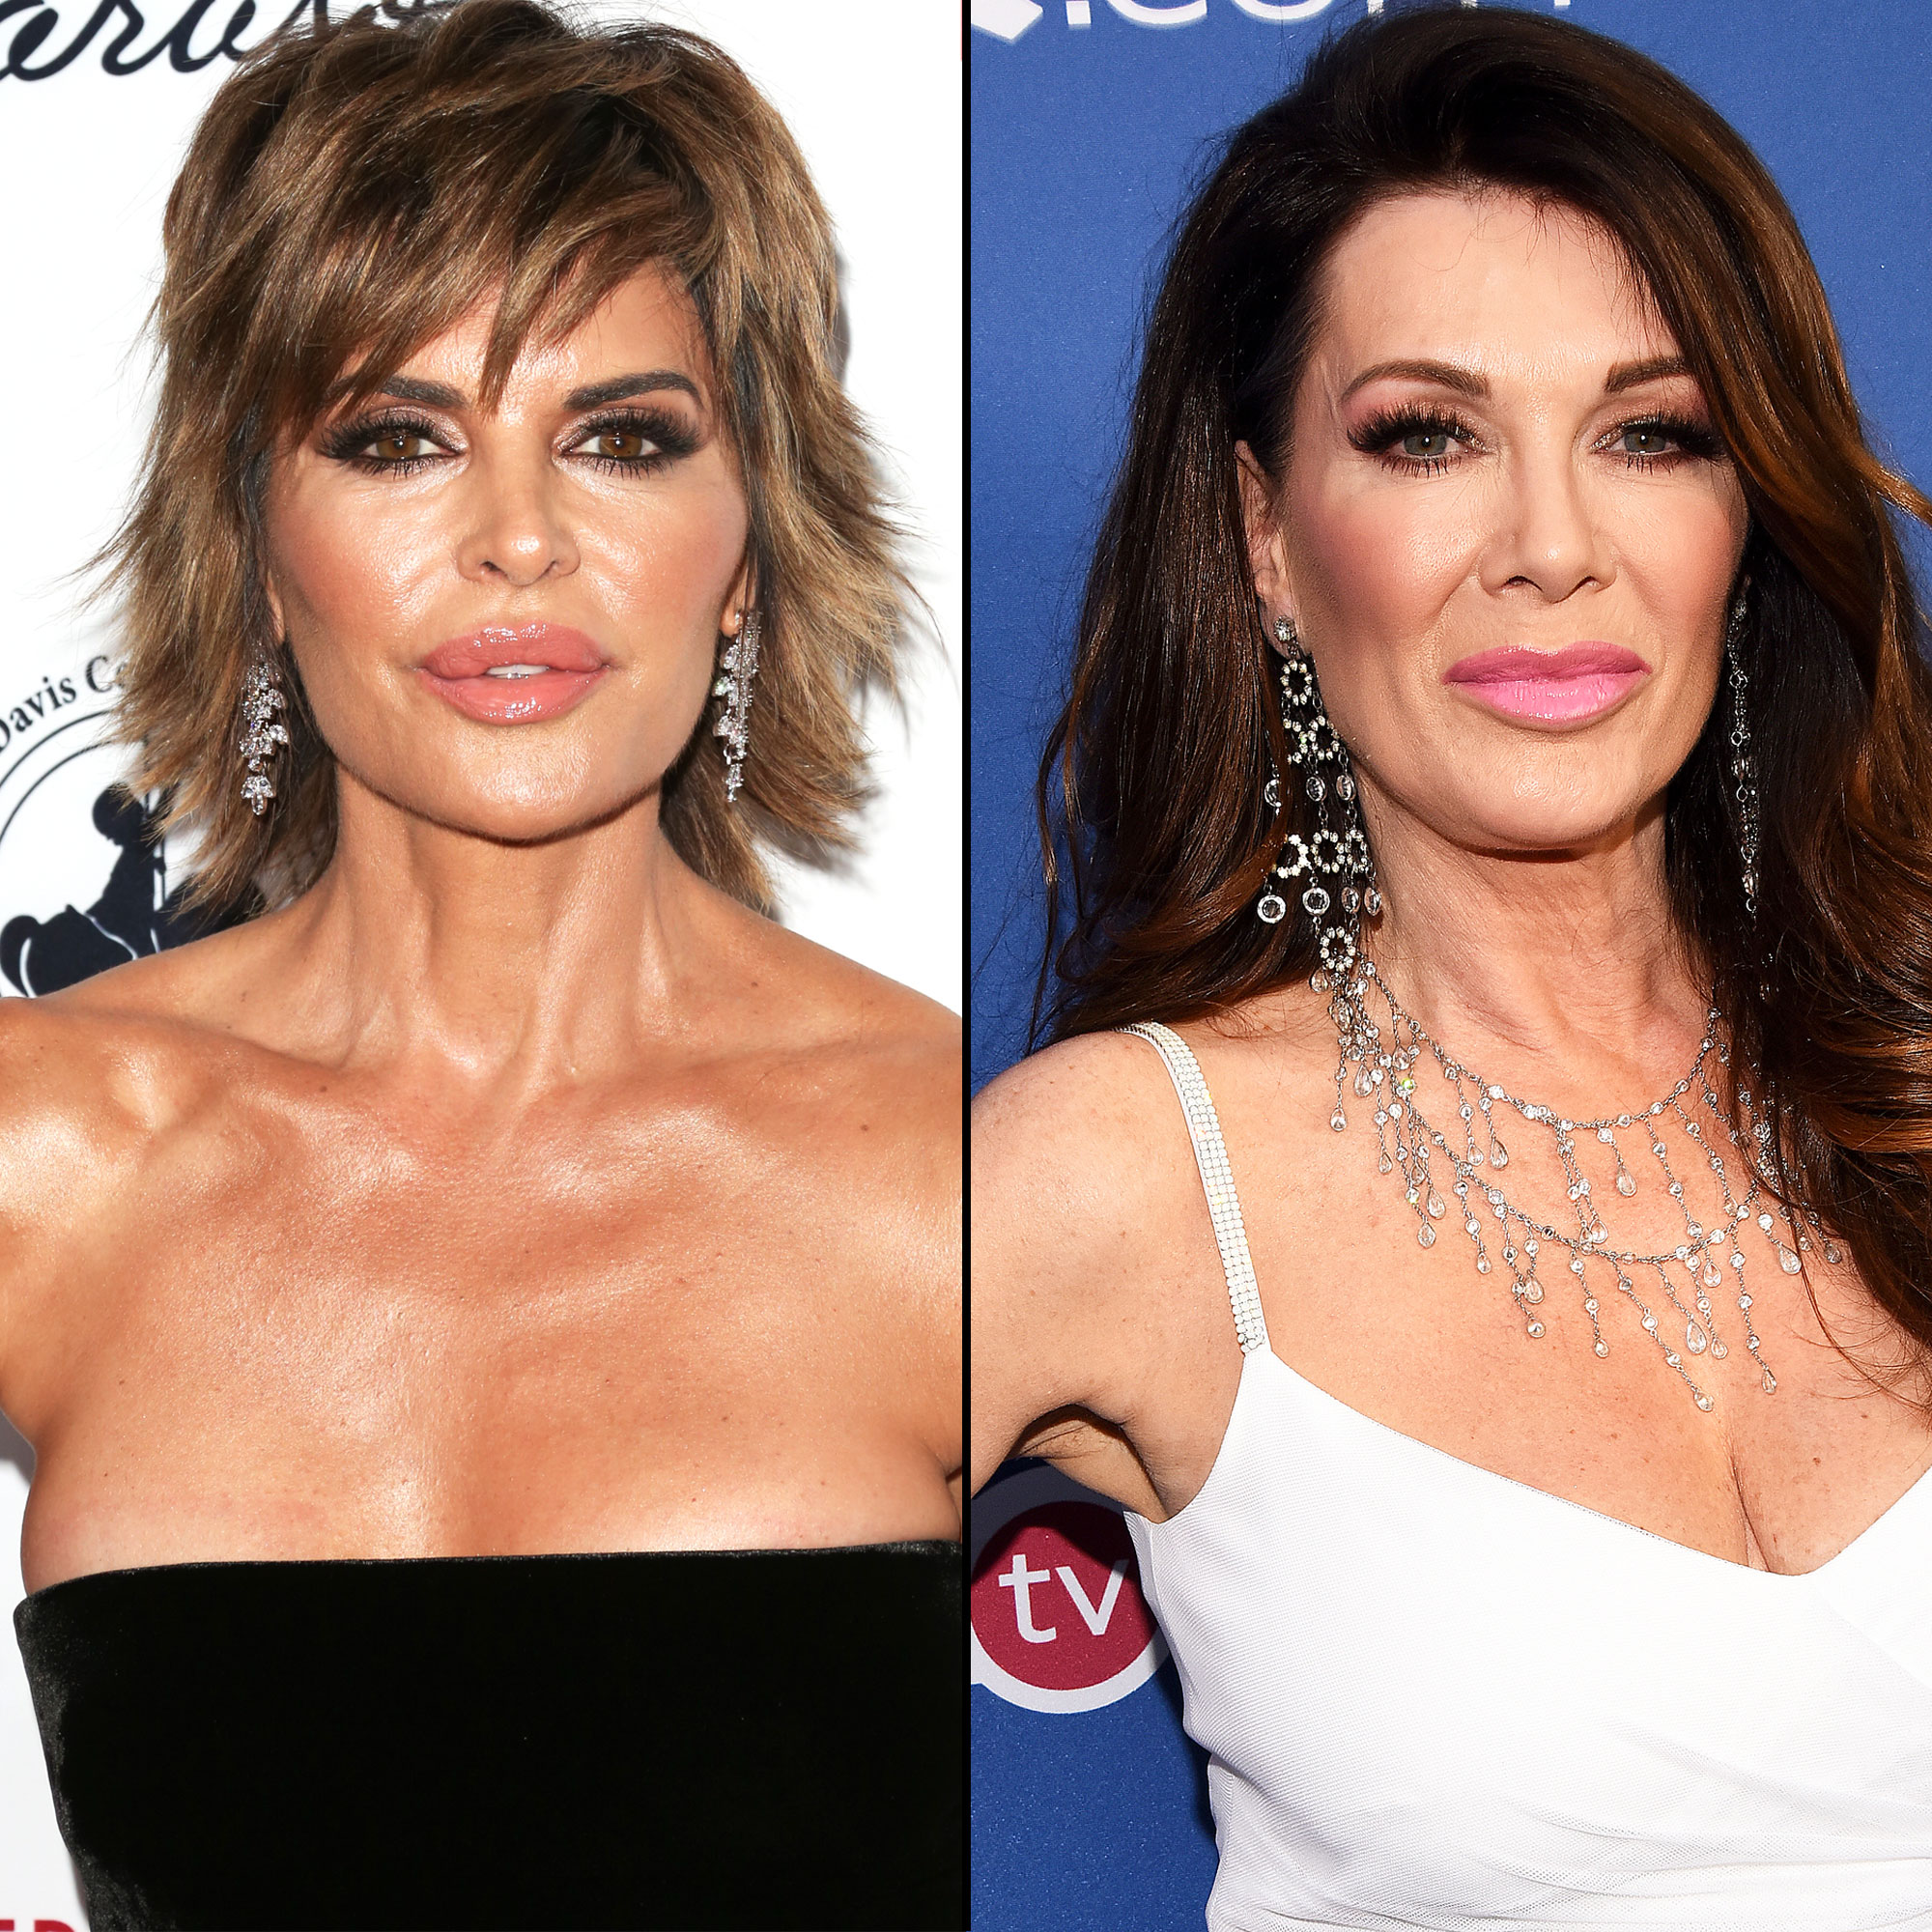 lisa rinna calls out lisa vanderpump for not filming with rhobh cast